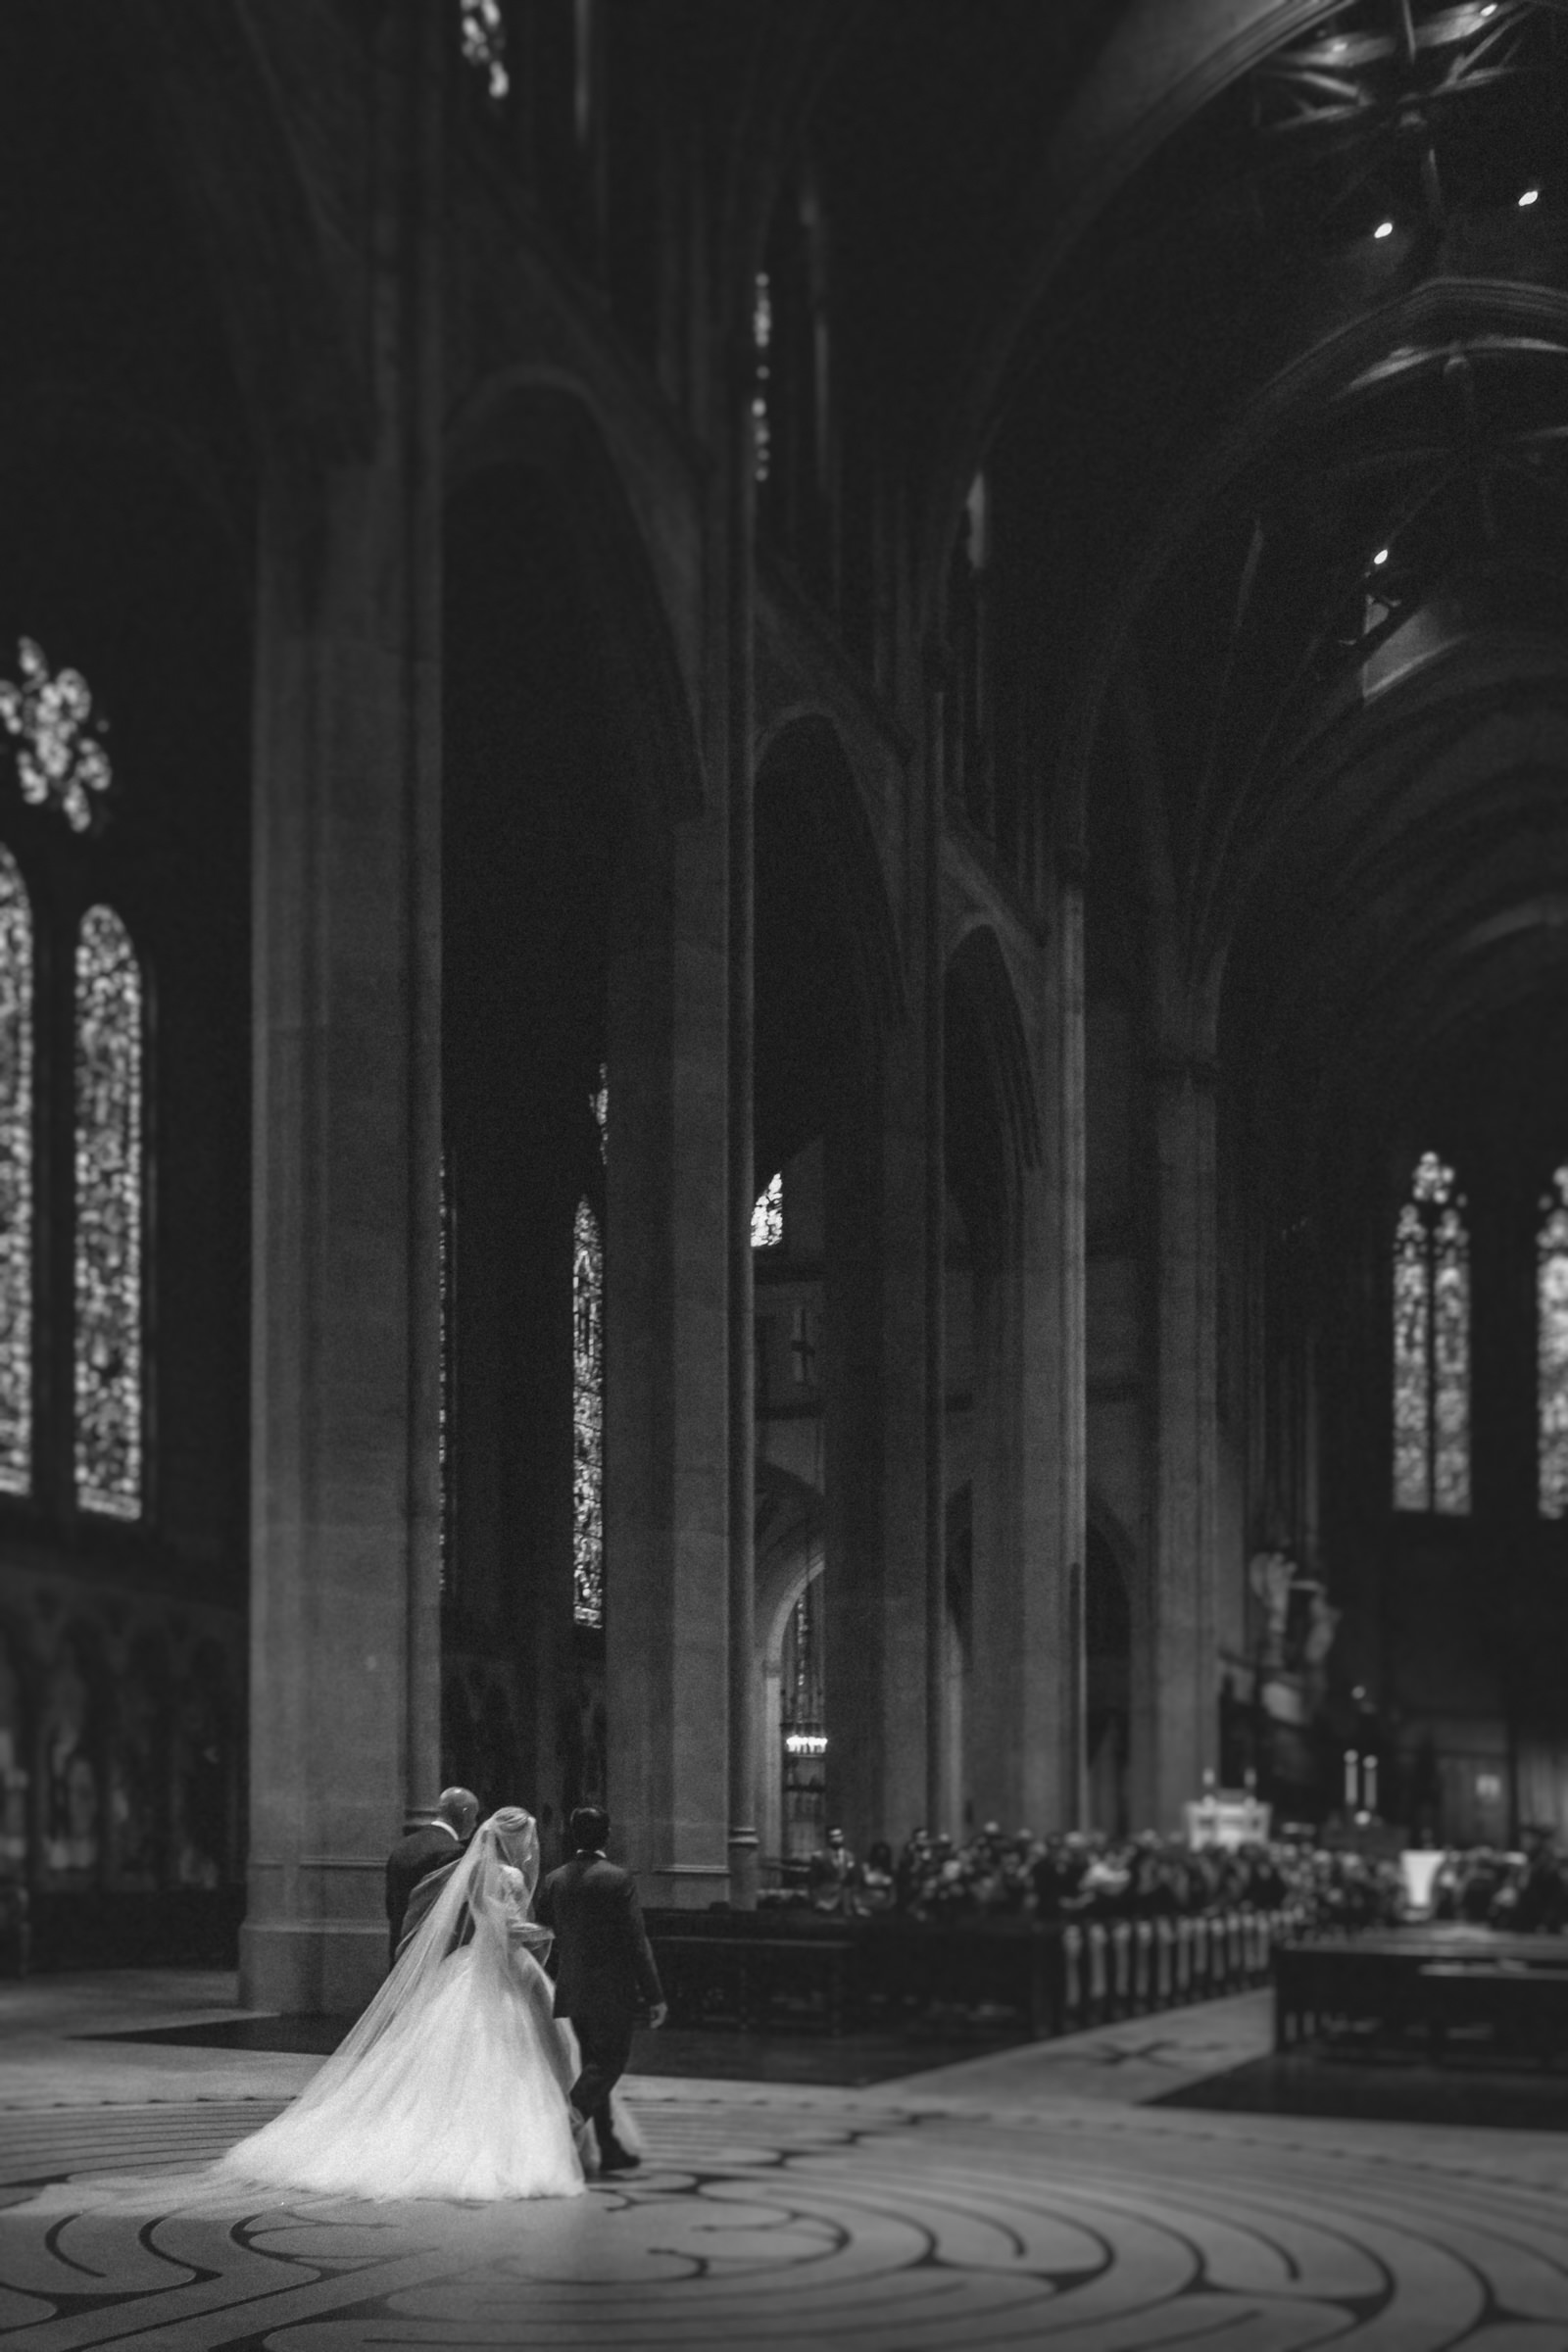 accompanied-bride-enters-cathedral-amy-and-stuart-photography